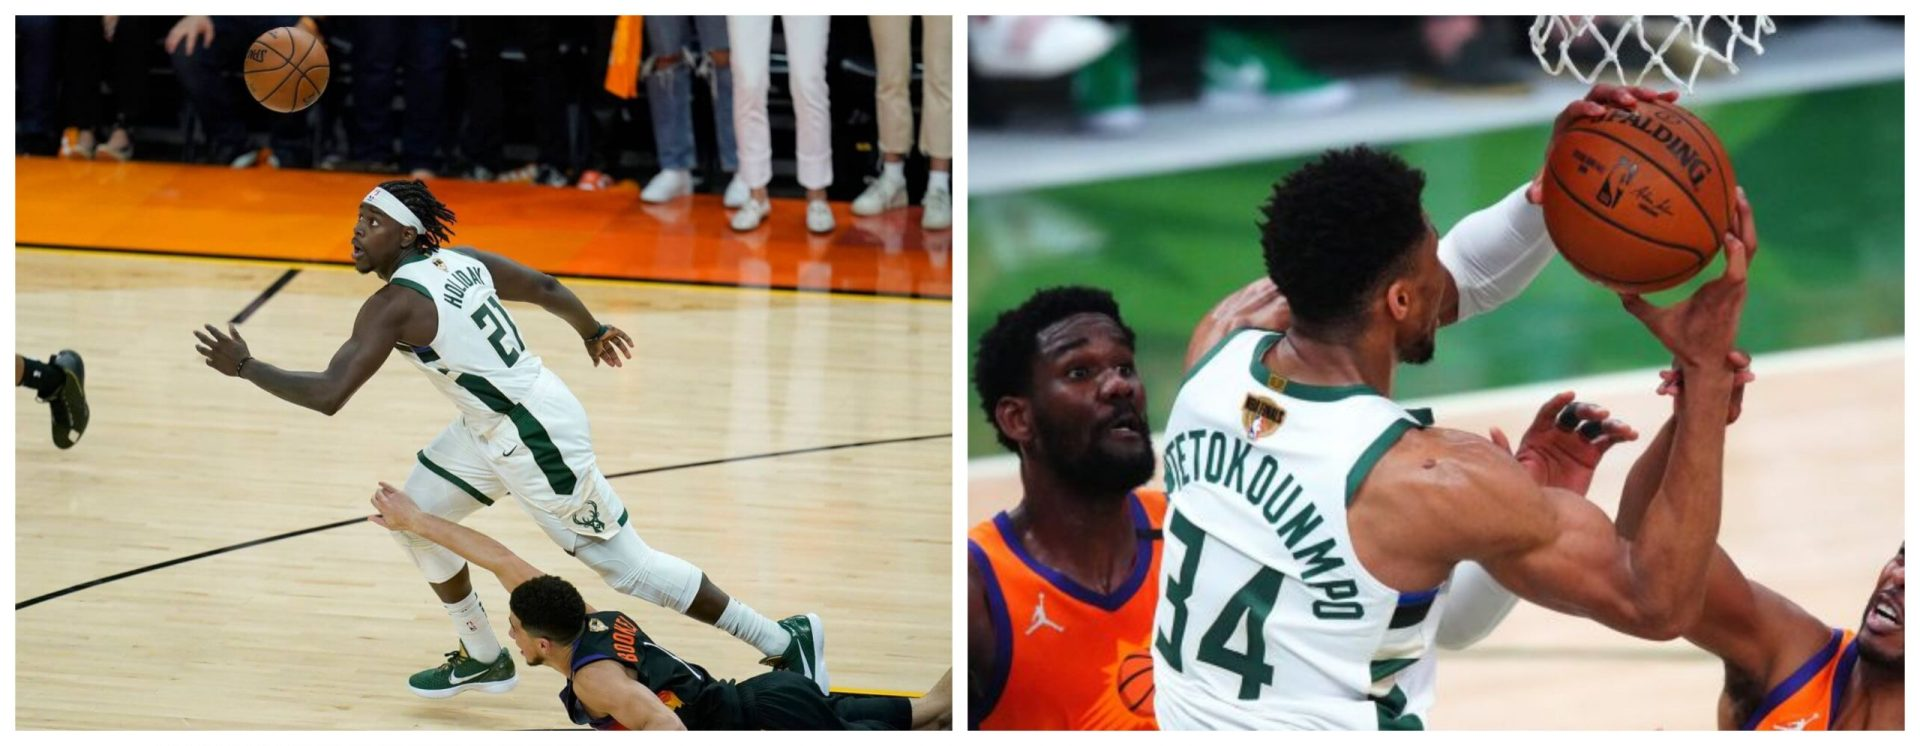 NBA Finals Review: Bucks survive a riveting topsy turvy contest to lead series 3-2 - THE SPORTS ROOM